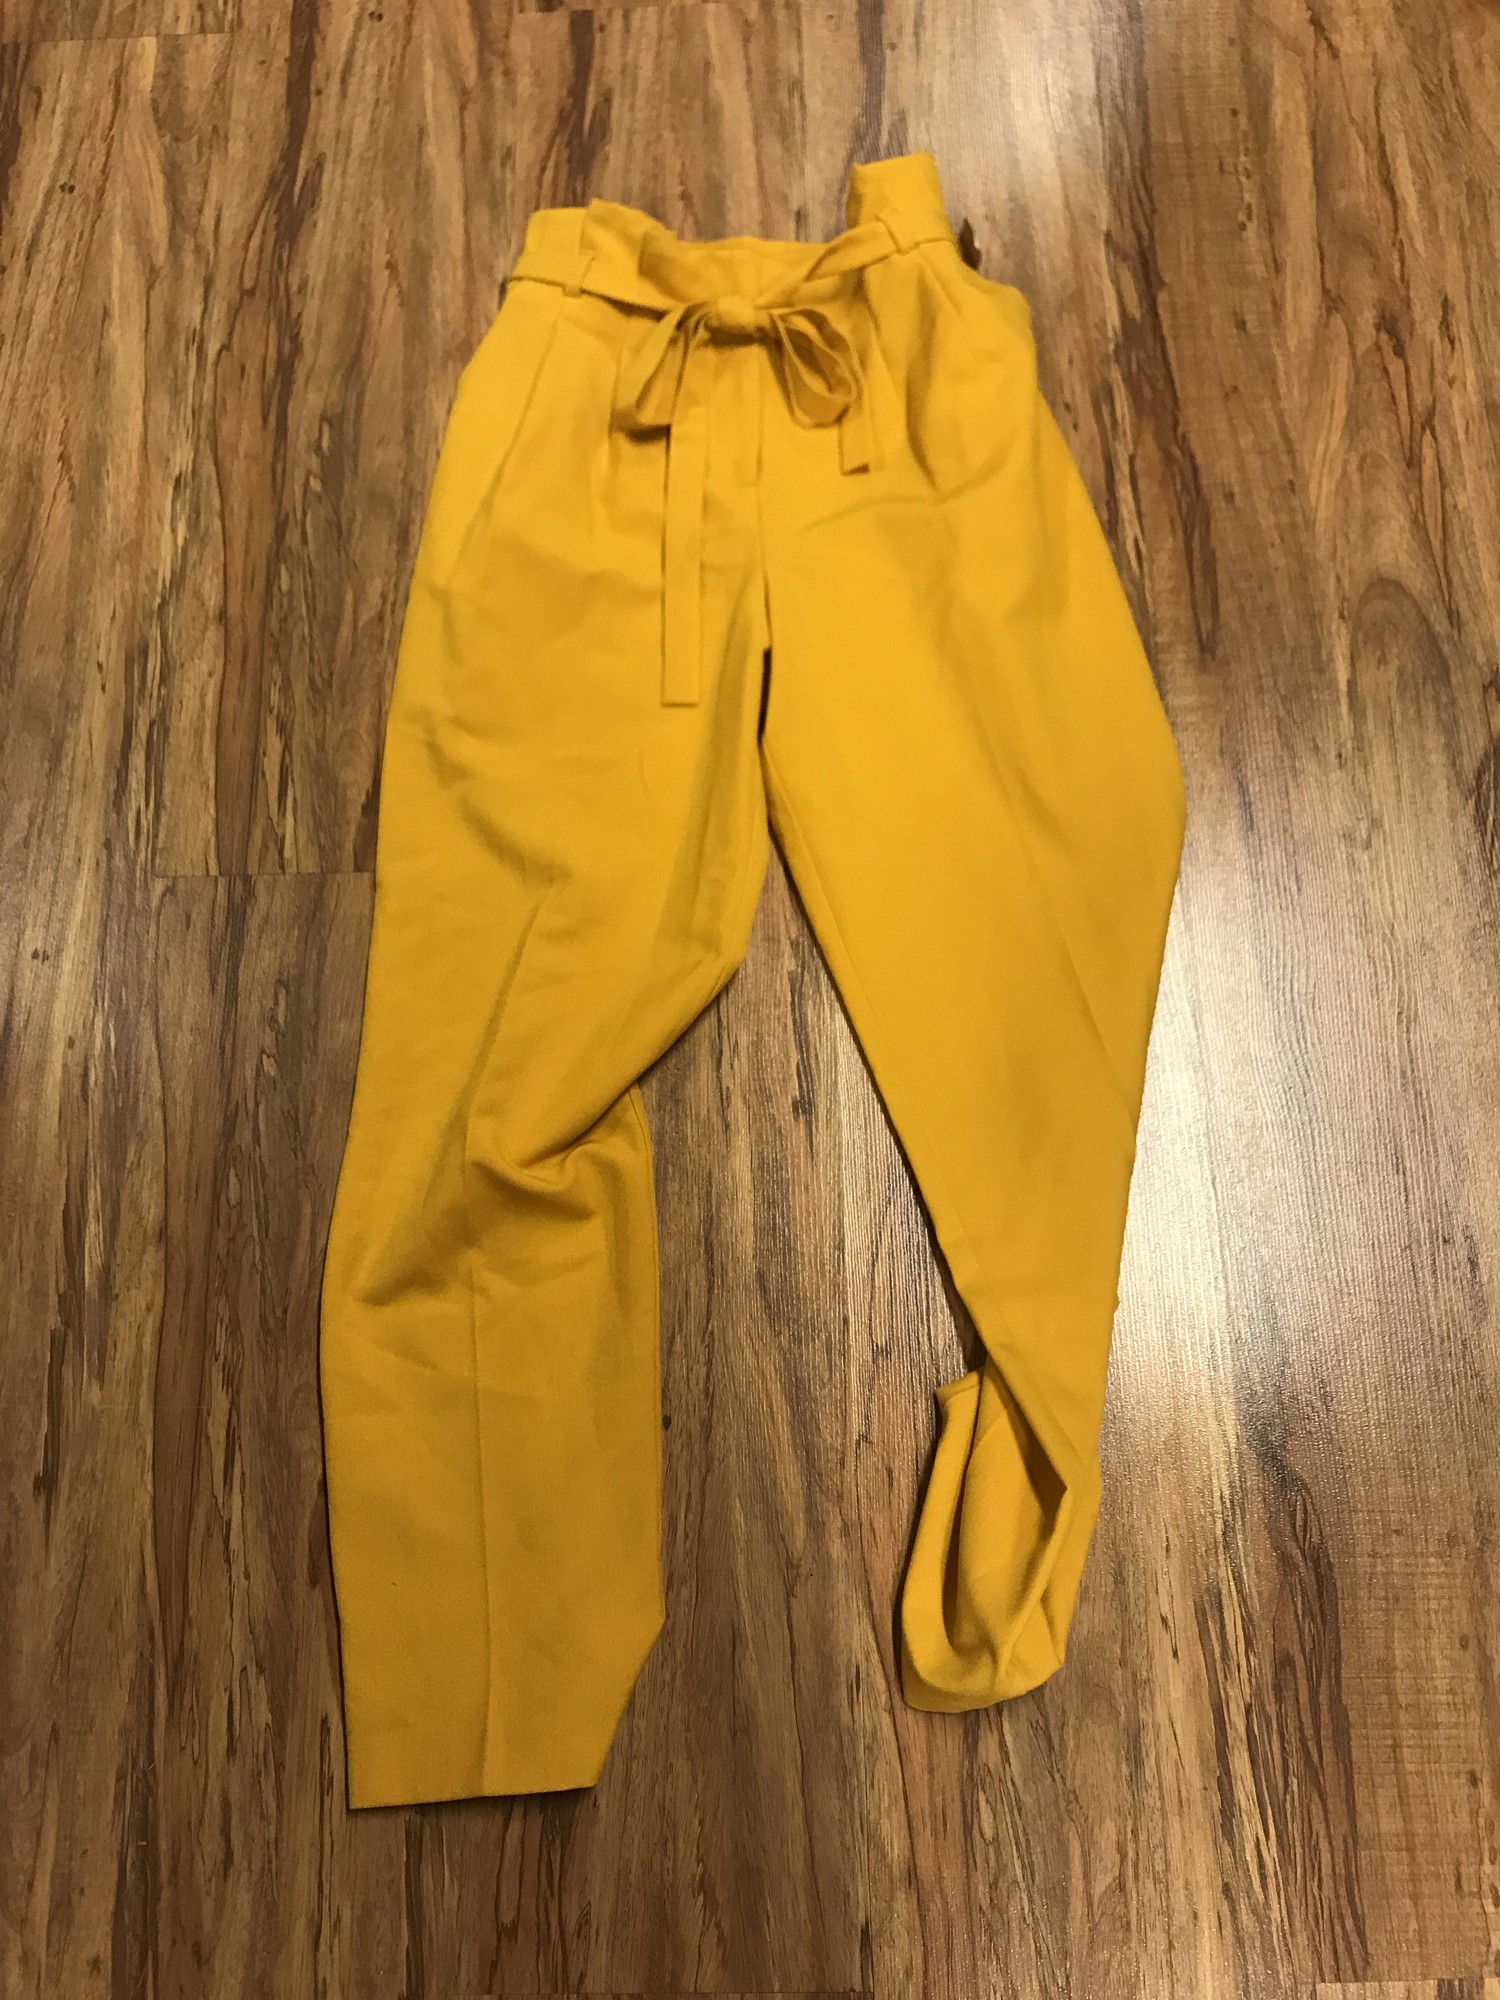 Miss Selfridge Pants, Yellow, Size: UK8